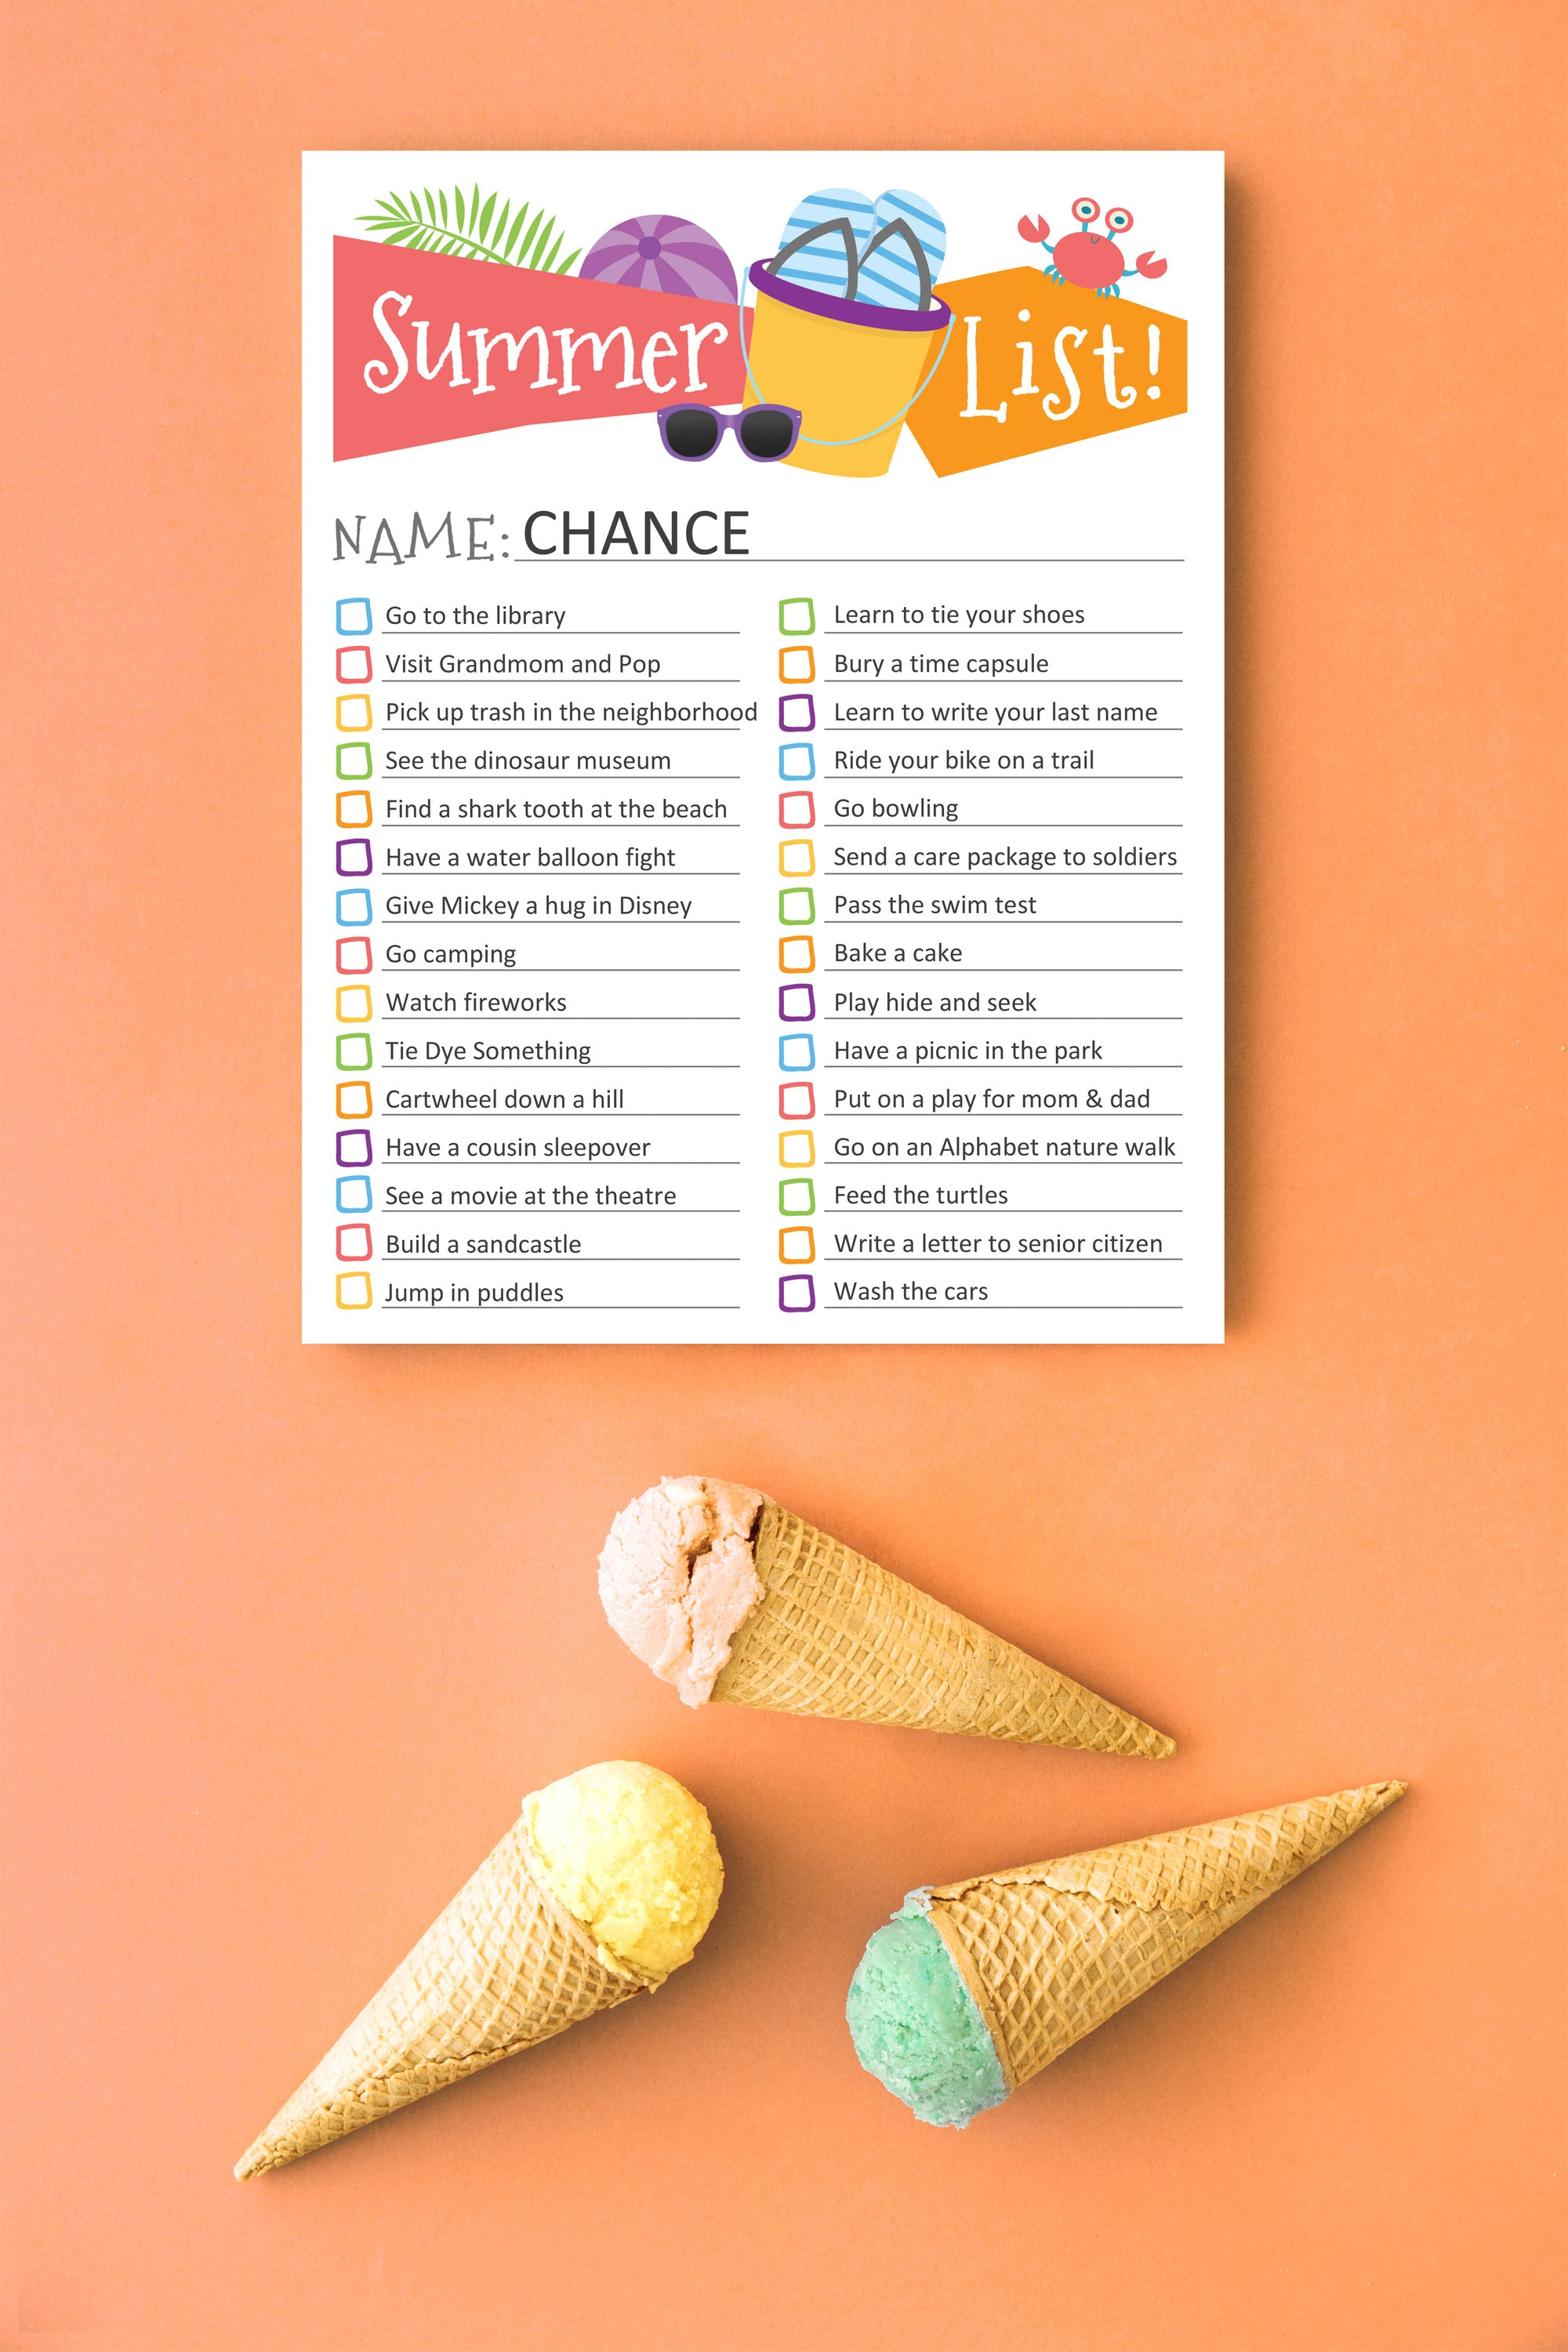 Free printable summer bucket list for you to download and customize